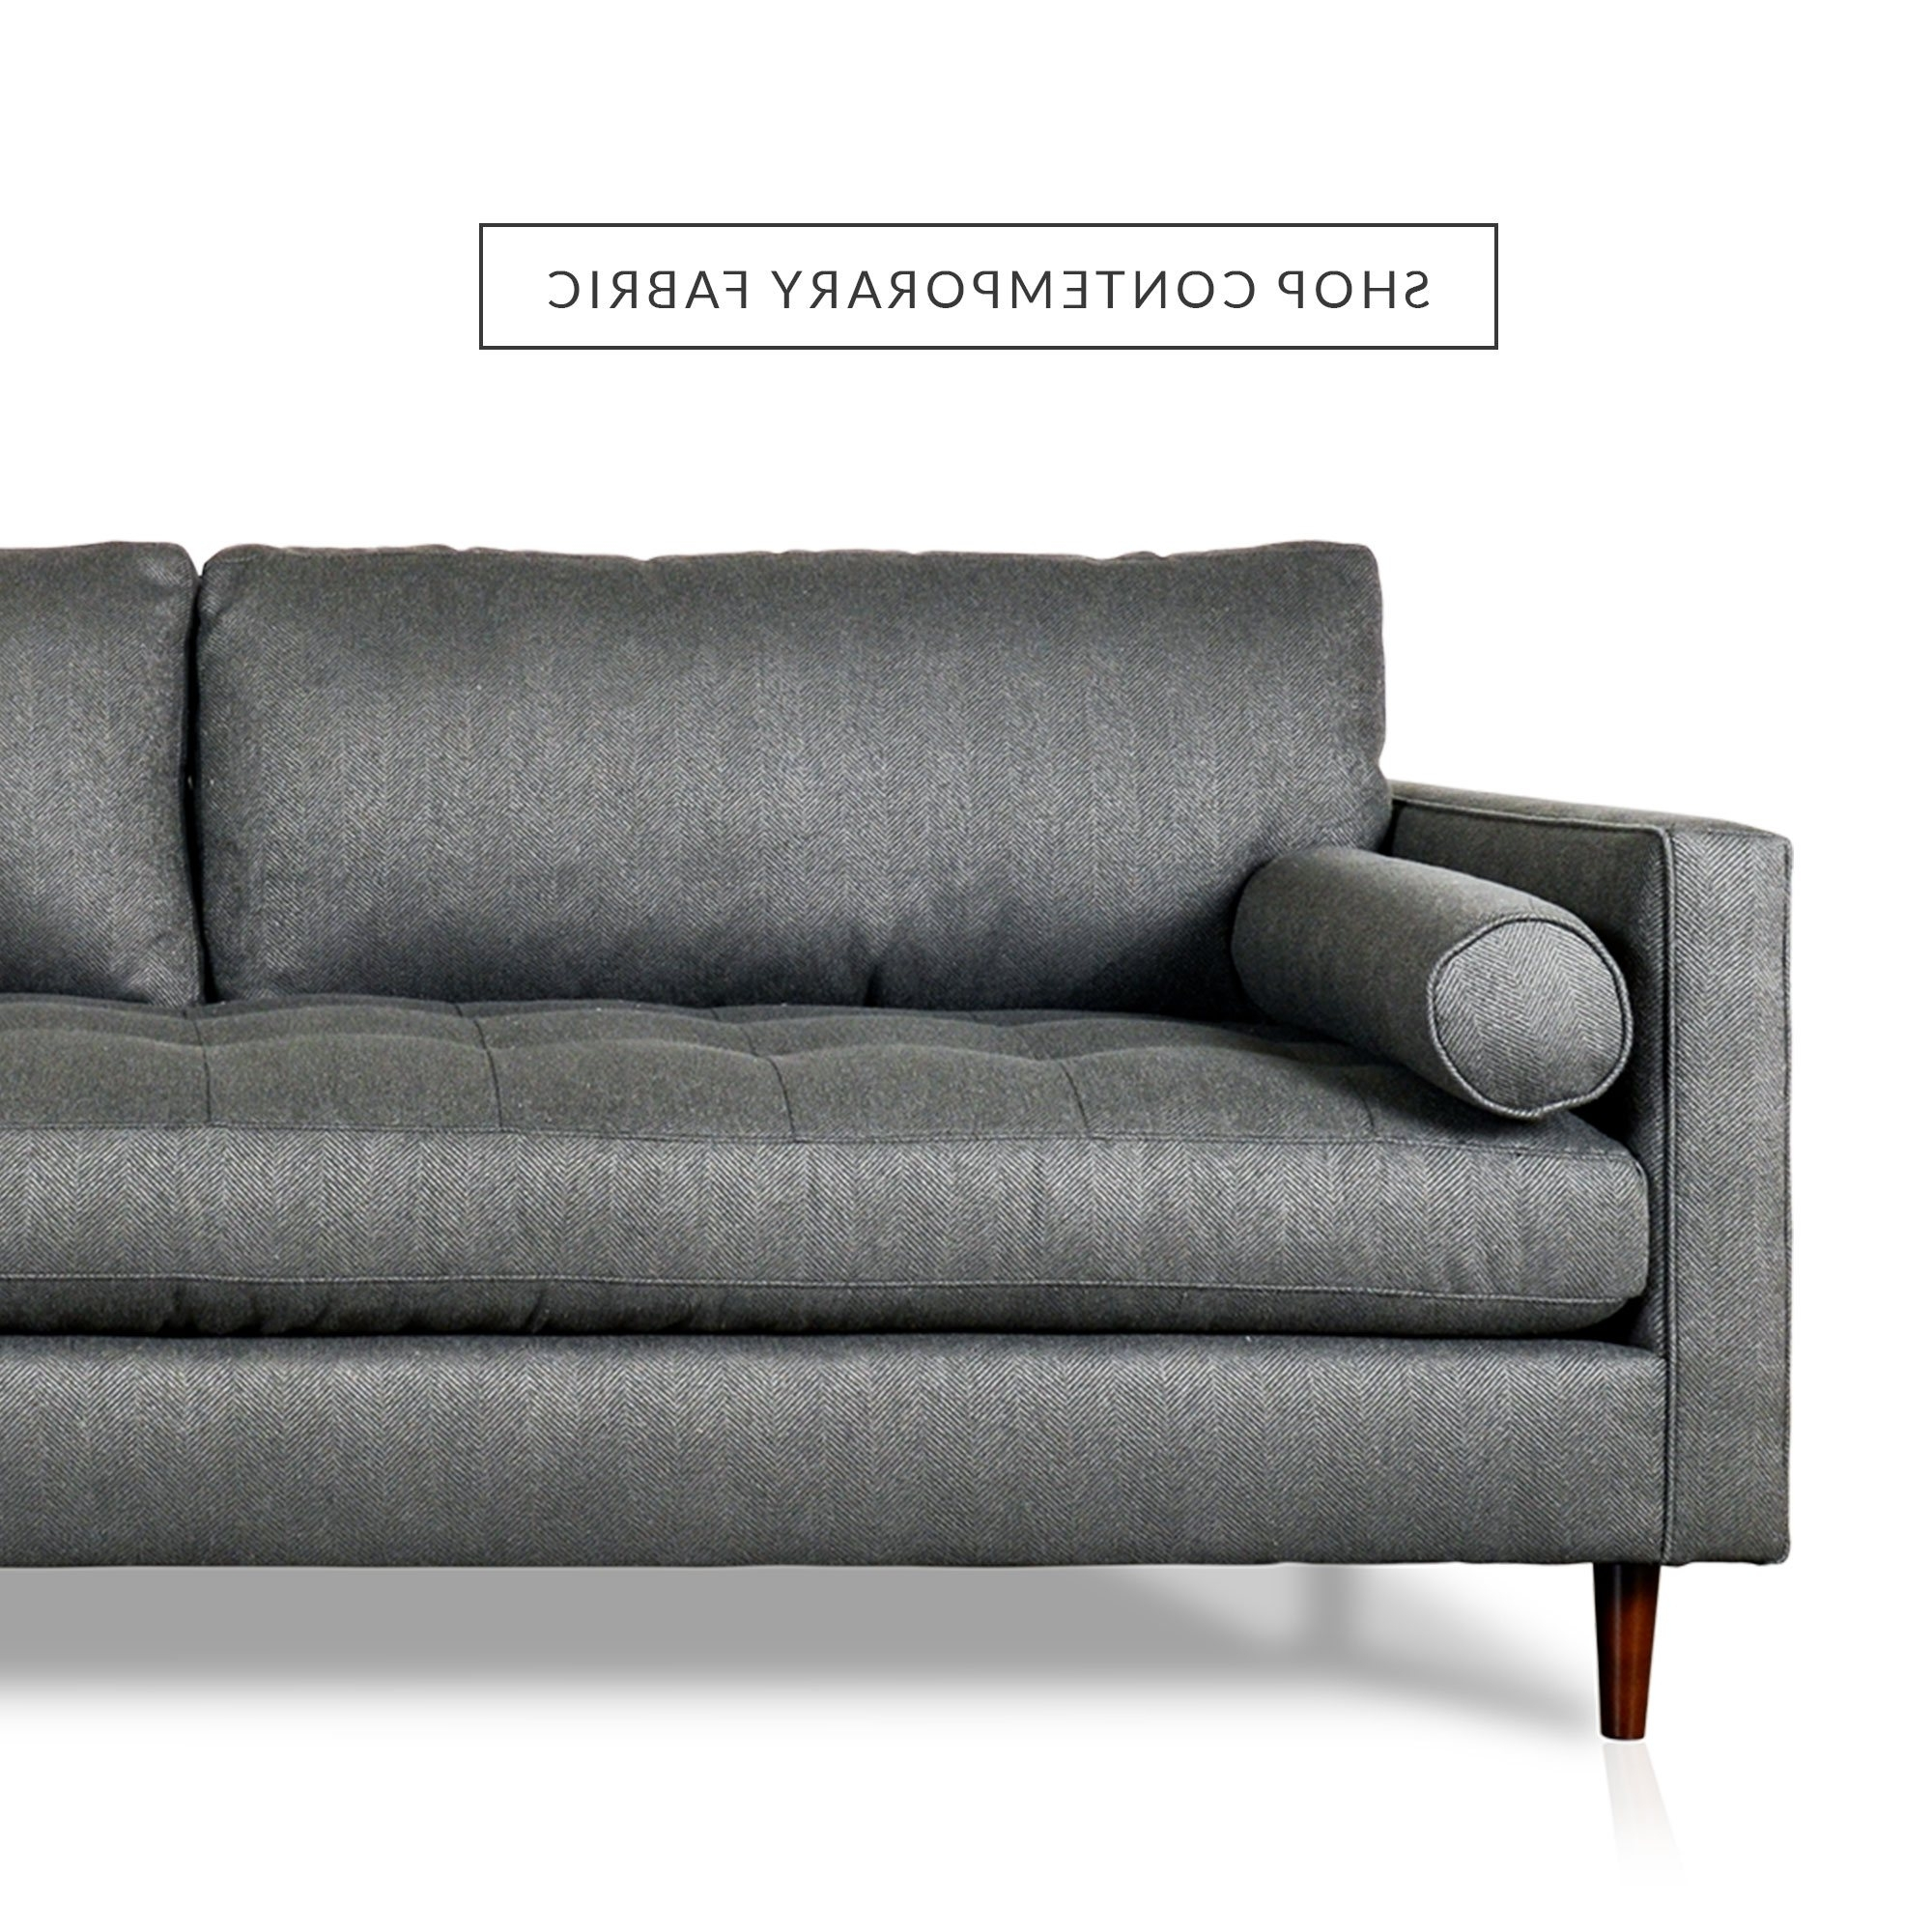 Chesterfield Sofas, Modern Furniture Made In Usa (View 3 of 20)